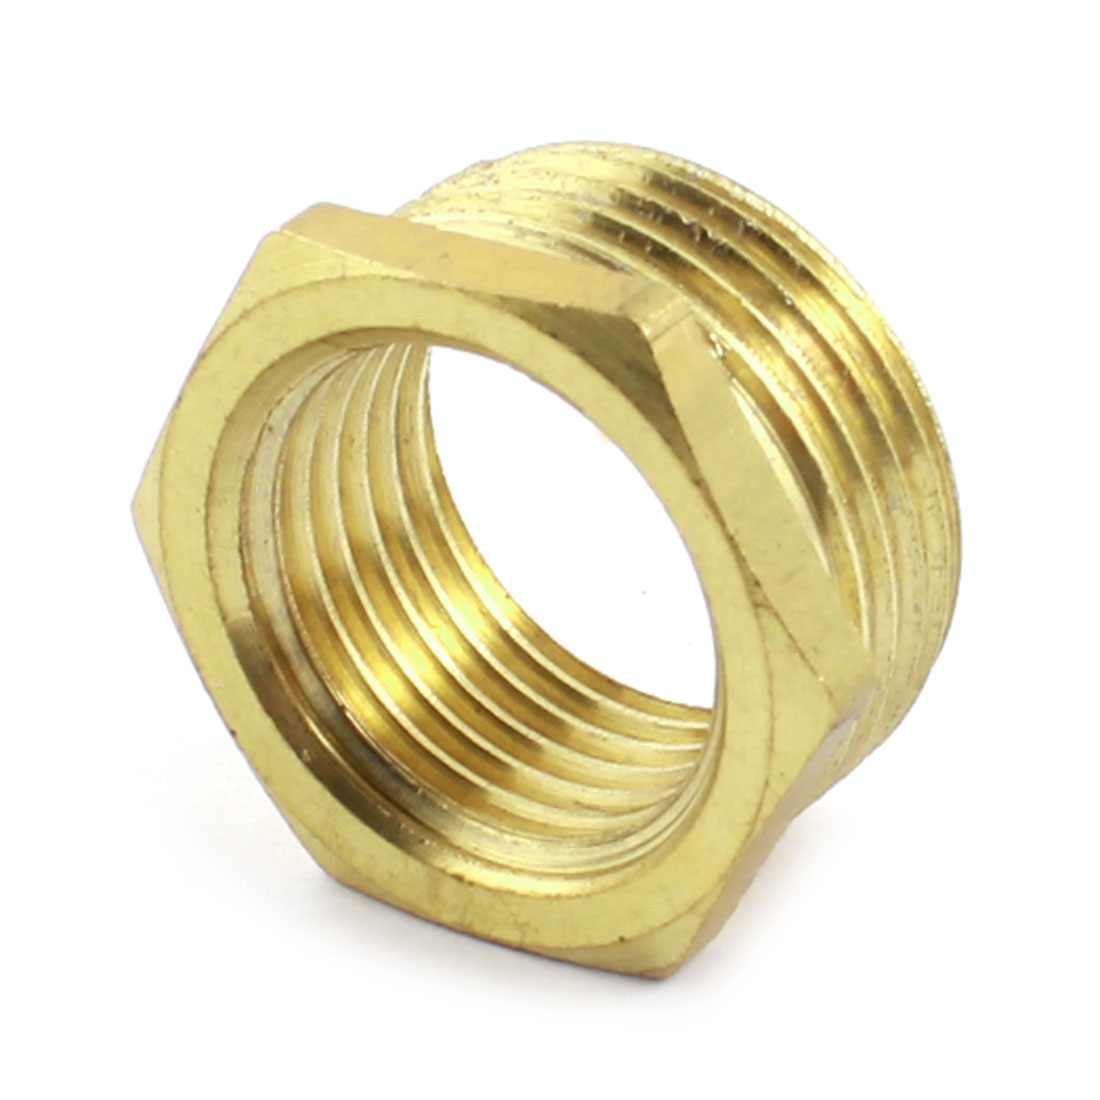 3/4PT x 1/2PT M/F Threaded Hex Head Gold Tone Brass Bushing Piping Fitting Connector Adapter